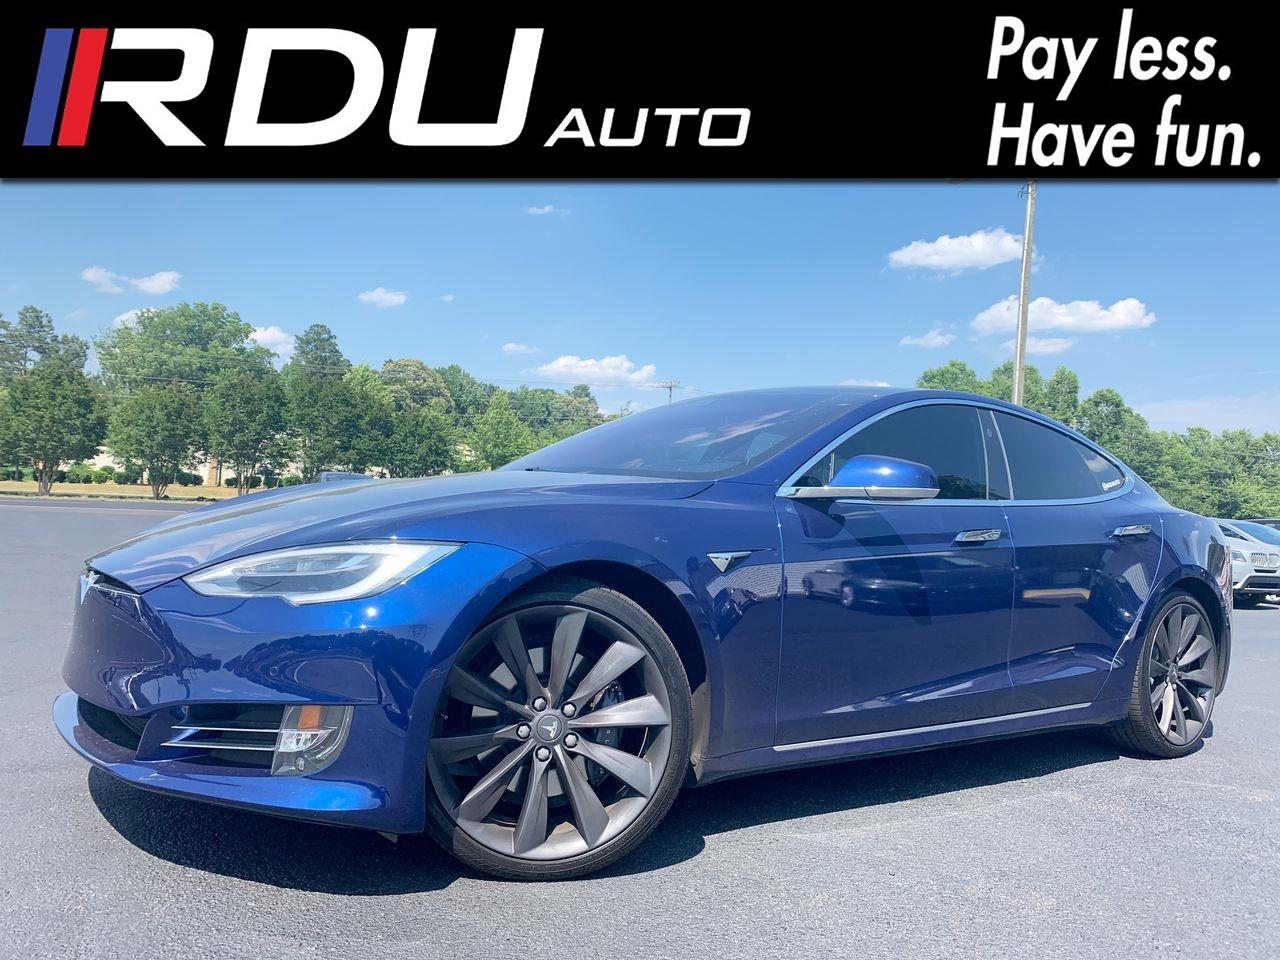 2017 Tesla Model S 75 Full Self Drive Ready, Autopilot 2, Glass Roof